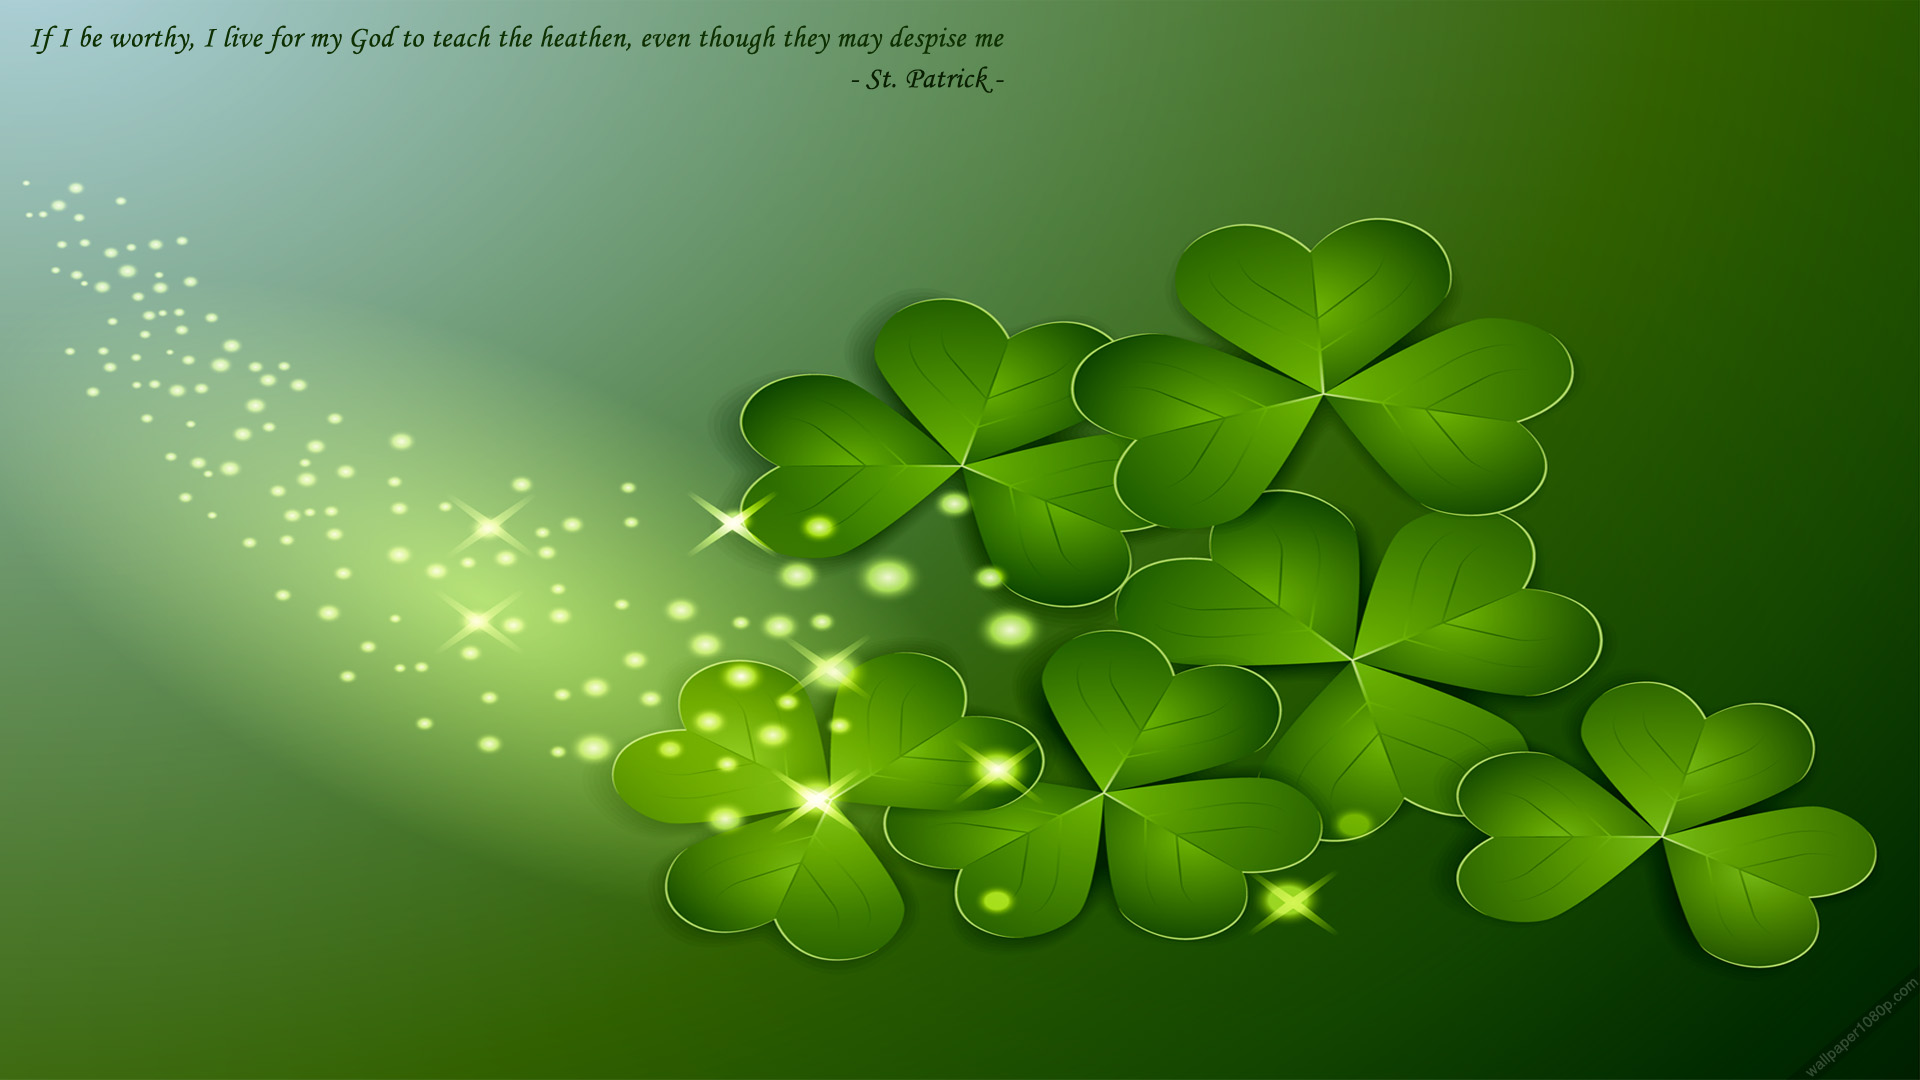 St Patrick Background Images: Pooh St Patrick's Day Wallpaper